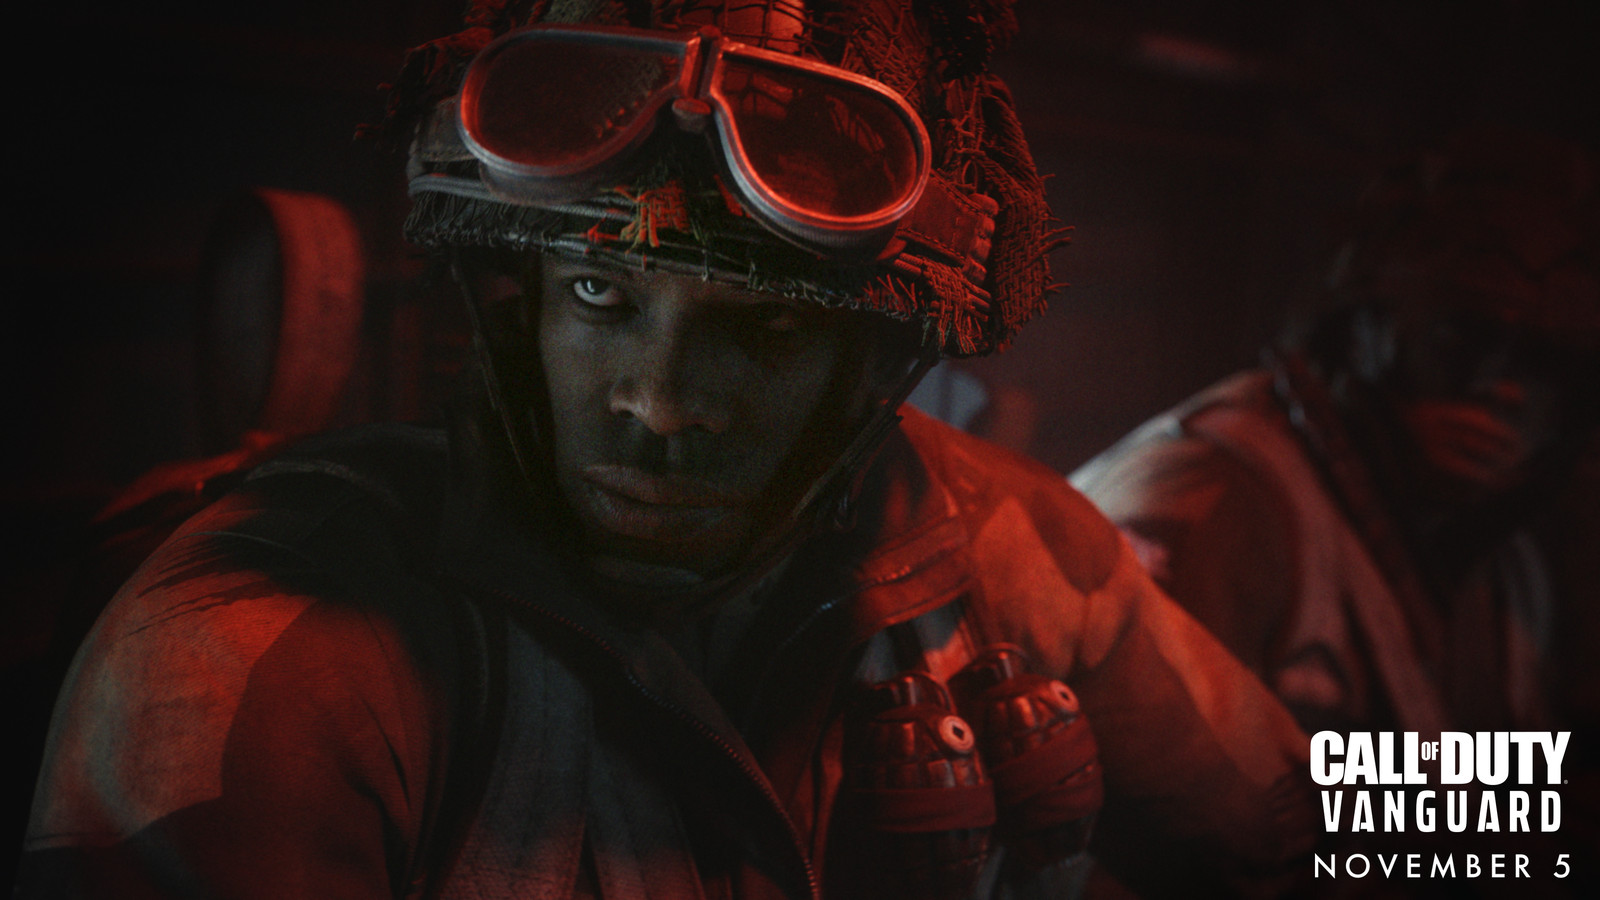 HHW Gaming: 'Call of Duty' Takes It Back To World War II In 'Vanguard' Reveal Trailer